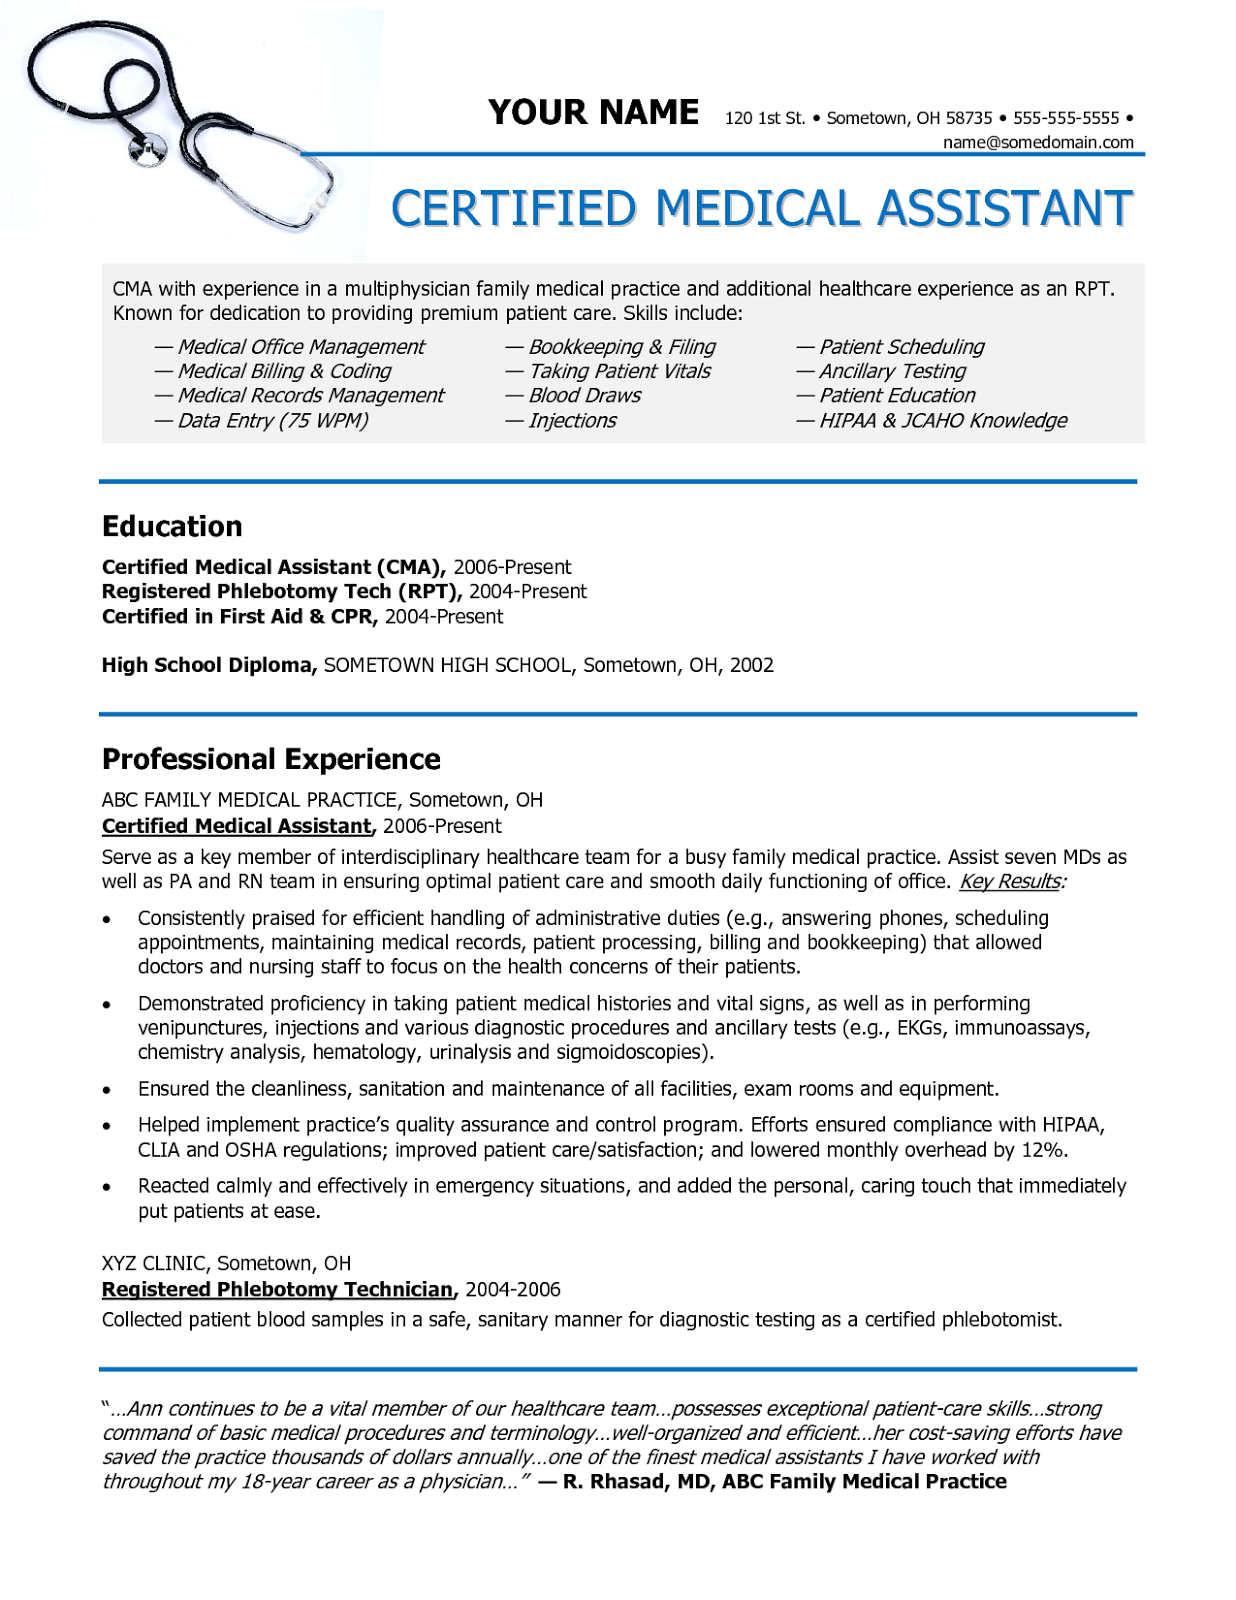 medical assistant resume skills medical assistant medical assistant resume skills berathen com